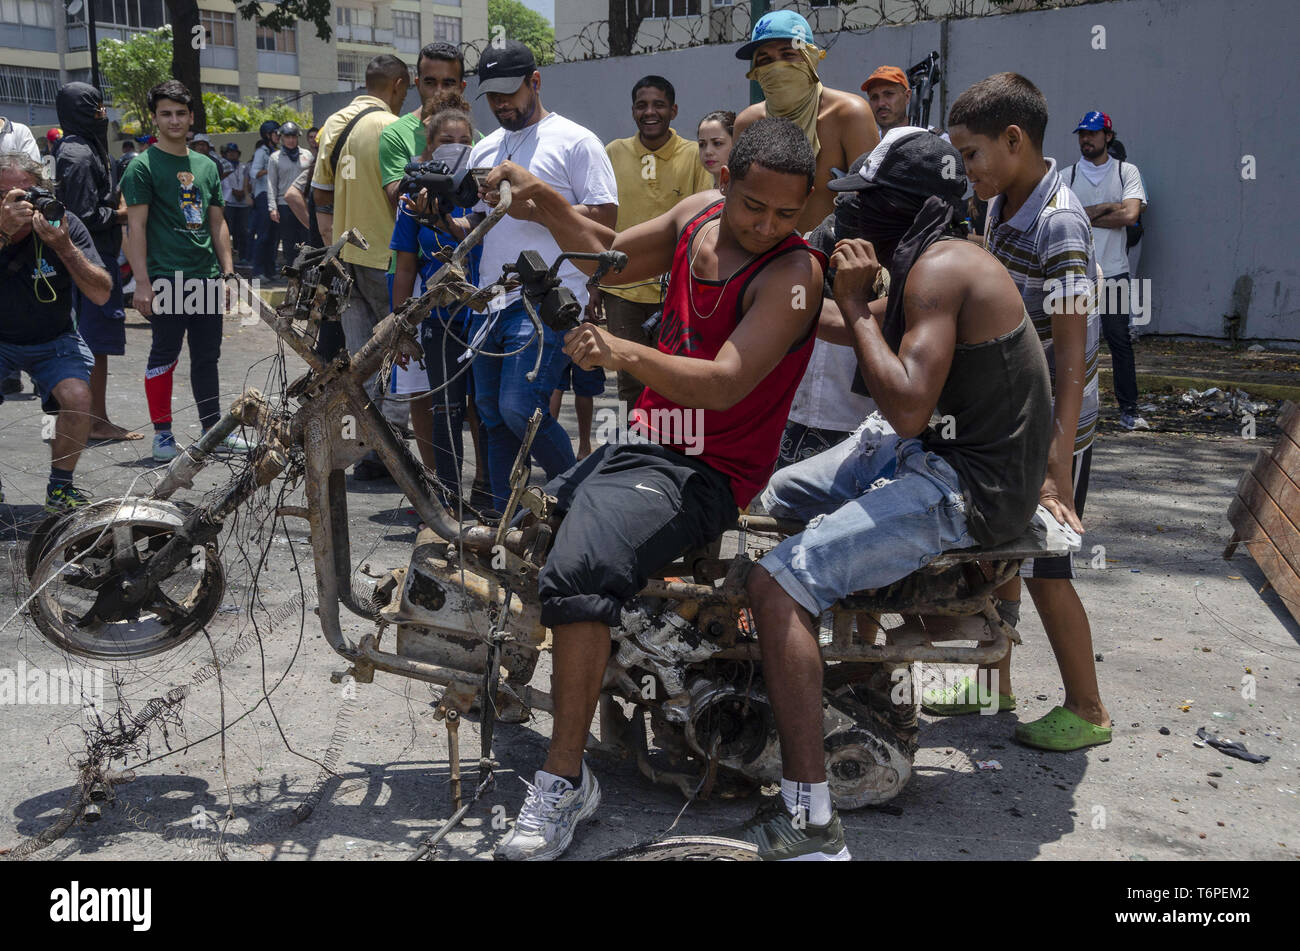 Caracas, Miranda, Venezuela. 1st May, 2019. Young people living on the streets (homeless) play with a burnt motorbike, remnants of the incidents that occurred on April 30.Thousands of Venezuelans went out to march and protest against Maduro's government on Labor Day in Caracas and others cities in Venezuela (Credit Image: © Jimmy VillaltaZUMA Wire) - Stock Image